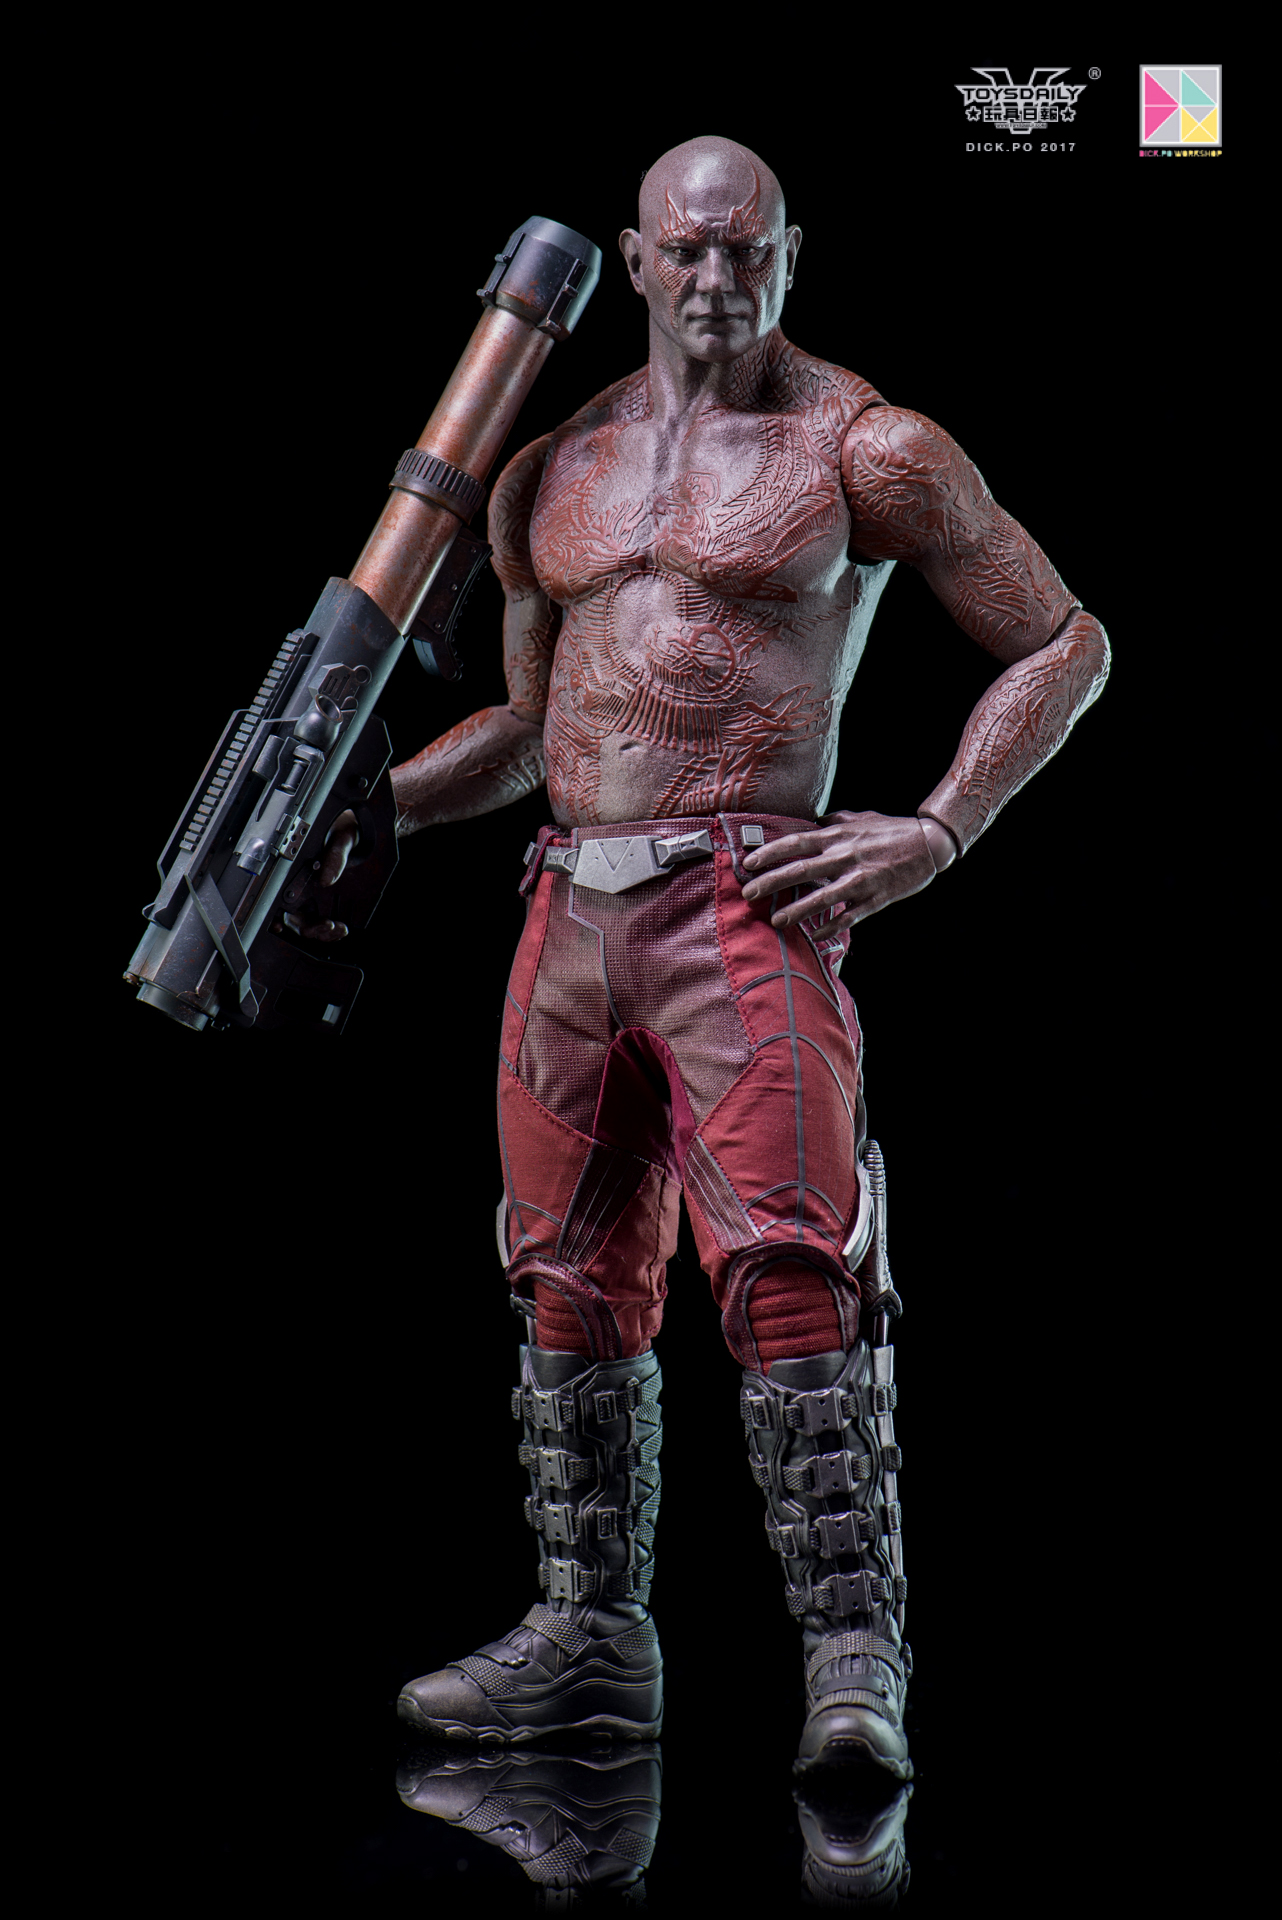 toysdaily_dick.po_Hottoys_DARX-45.jpg